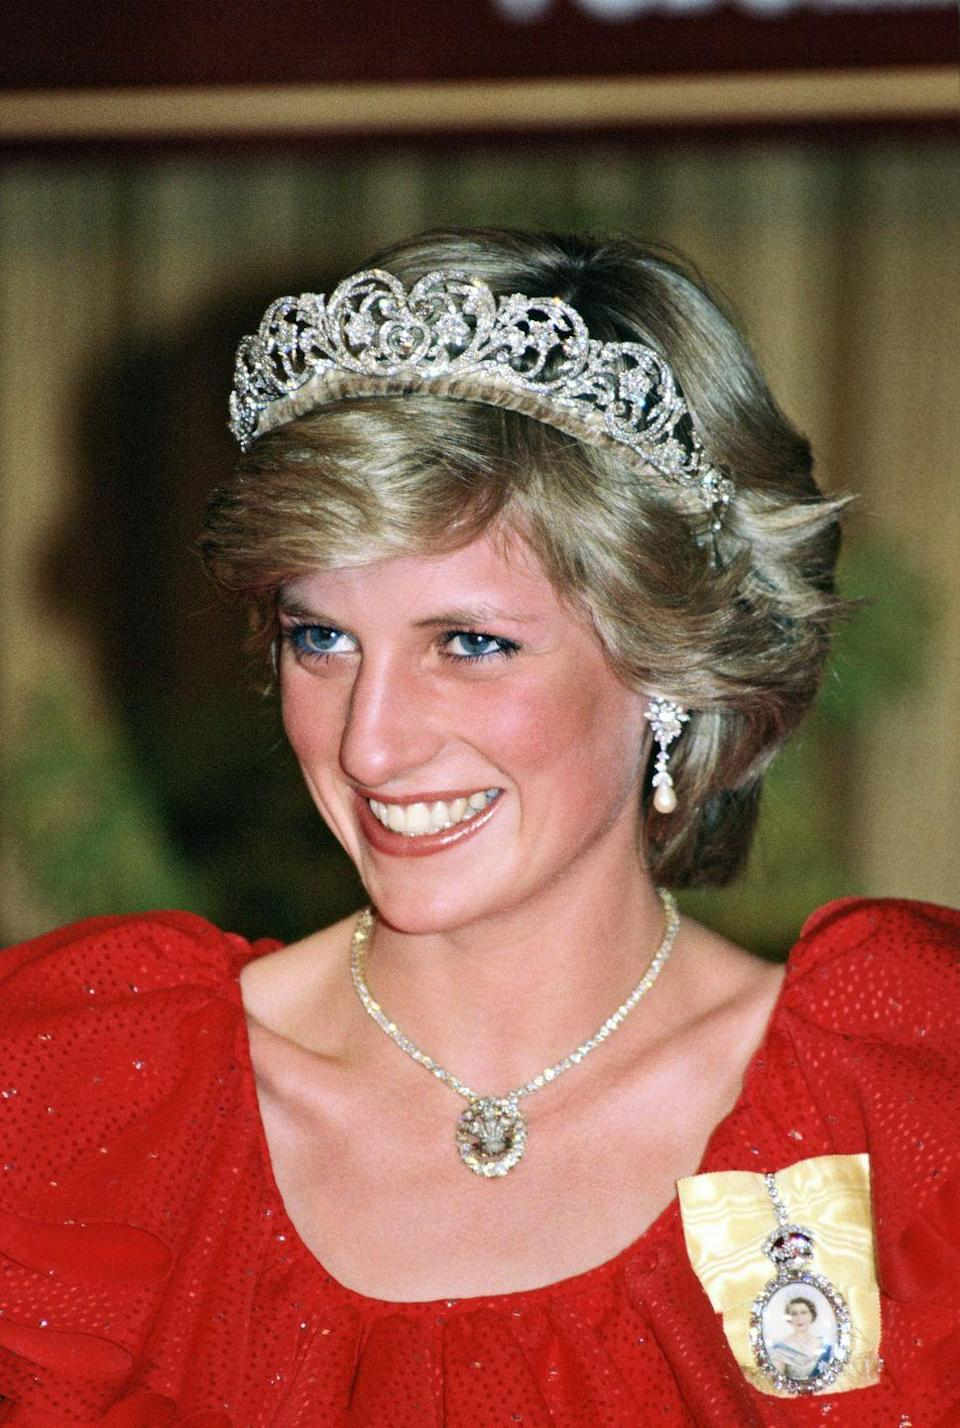 """<p>The tiara was originally given to her grandmother in 1919, with additional pieces added in the 1930s, according to <a href=""""https://people.com/royals/princess-dianas-spencer-tiara-history-and-photos/"""" rel=""""nofollow noopener"""" target=""""_blank"""" data-ylk=""""slk:People"""" class=""""link rapid-noclick-resp""""><em>People</em></a>. Both of Diana's sisters (and her sister-in-law) wore the tiara at their own weddings, making it a tradition to wear this family heirloom on one's wedding day. </p>"""